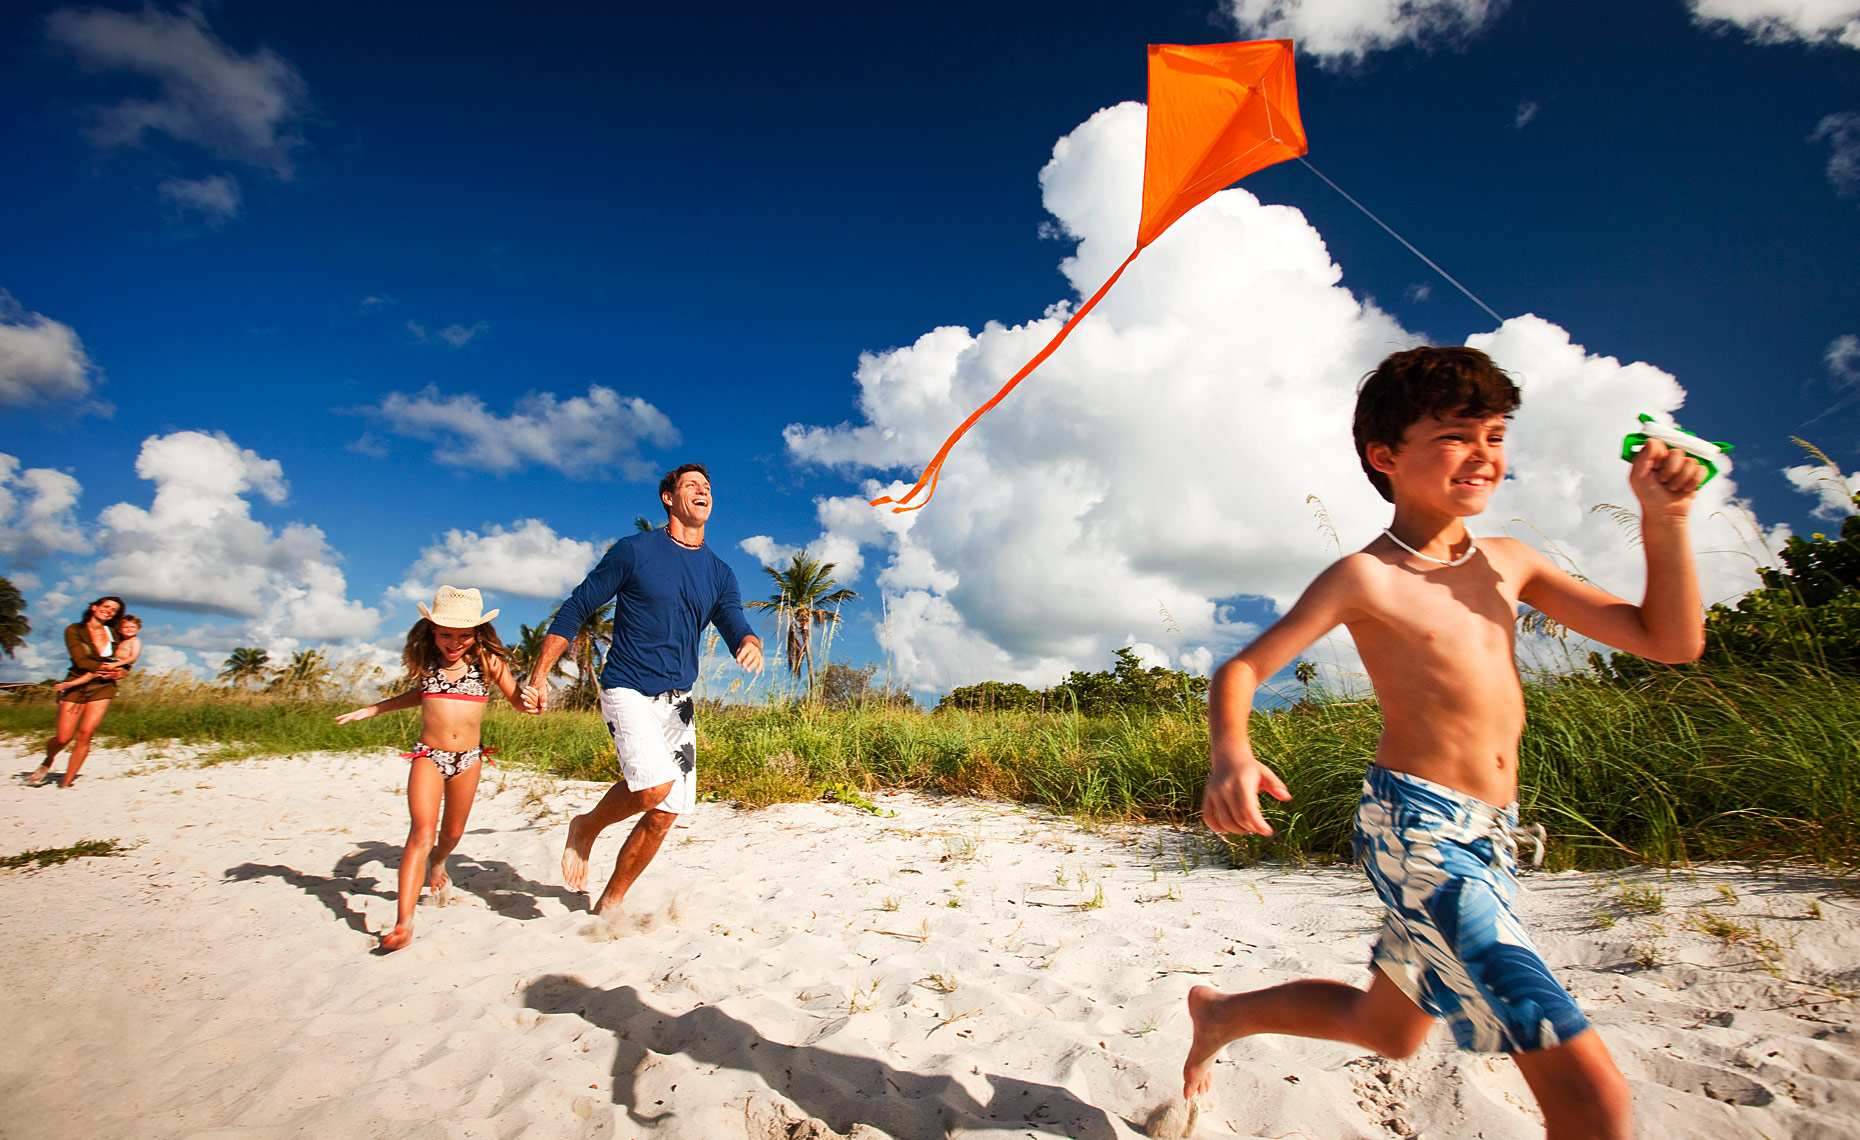 Family Beach Kite Flying.